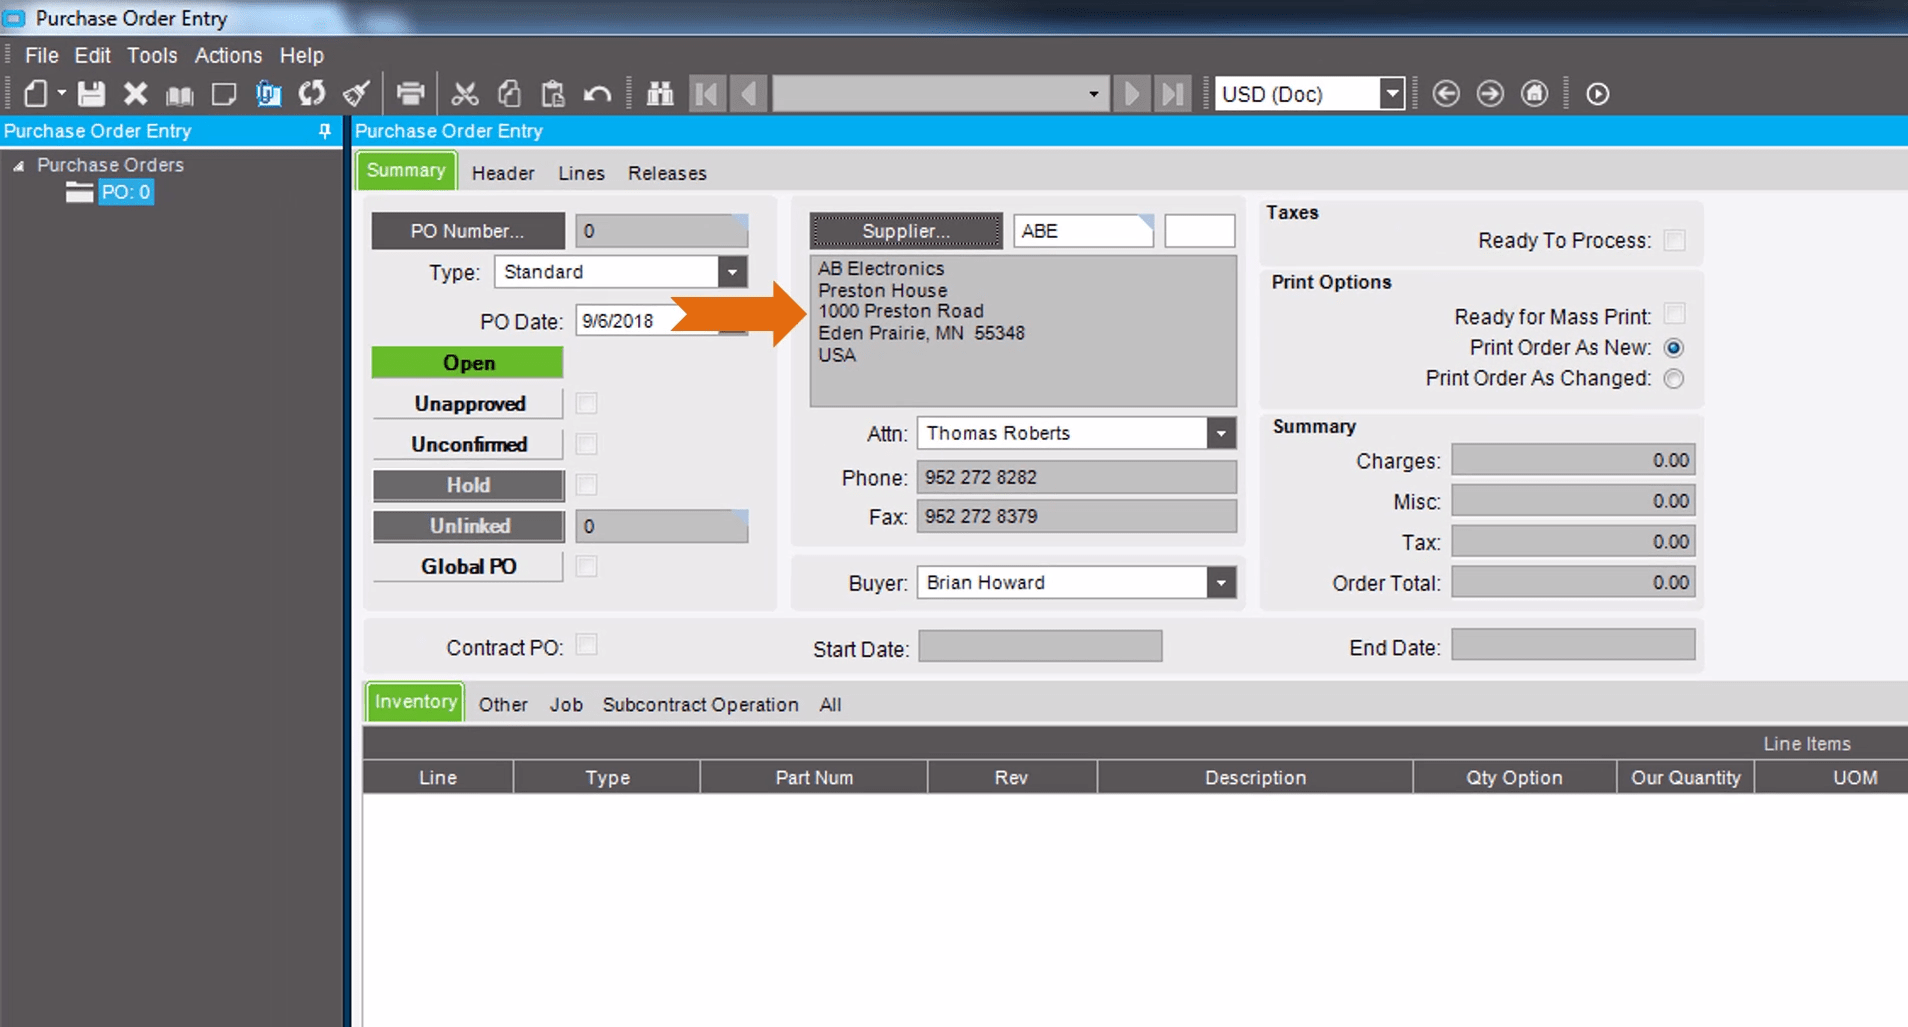 How to Enter a Purchase Order in Epicor ERP